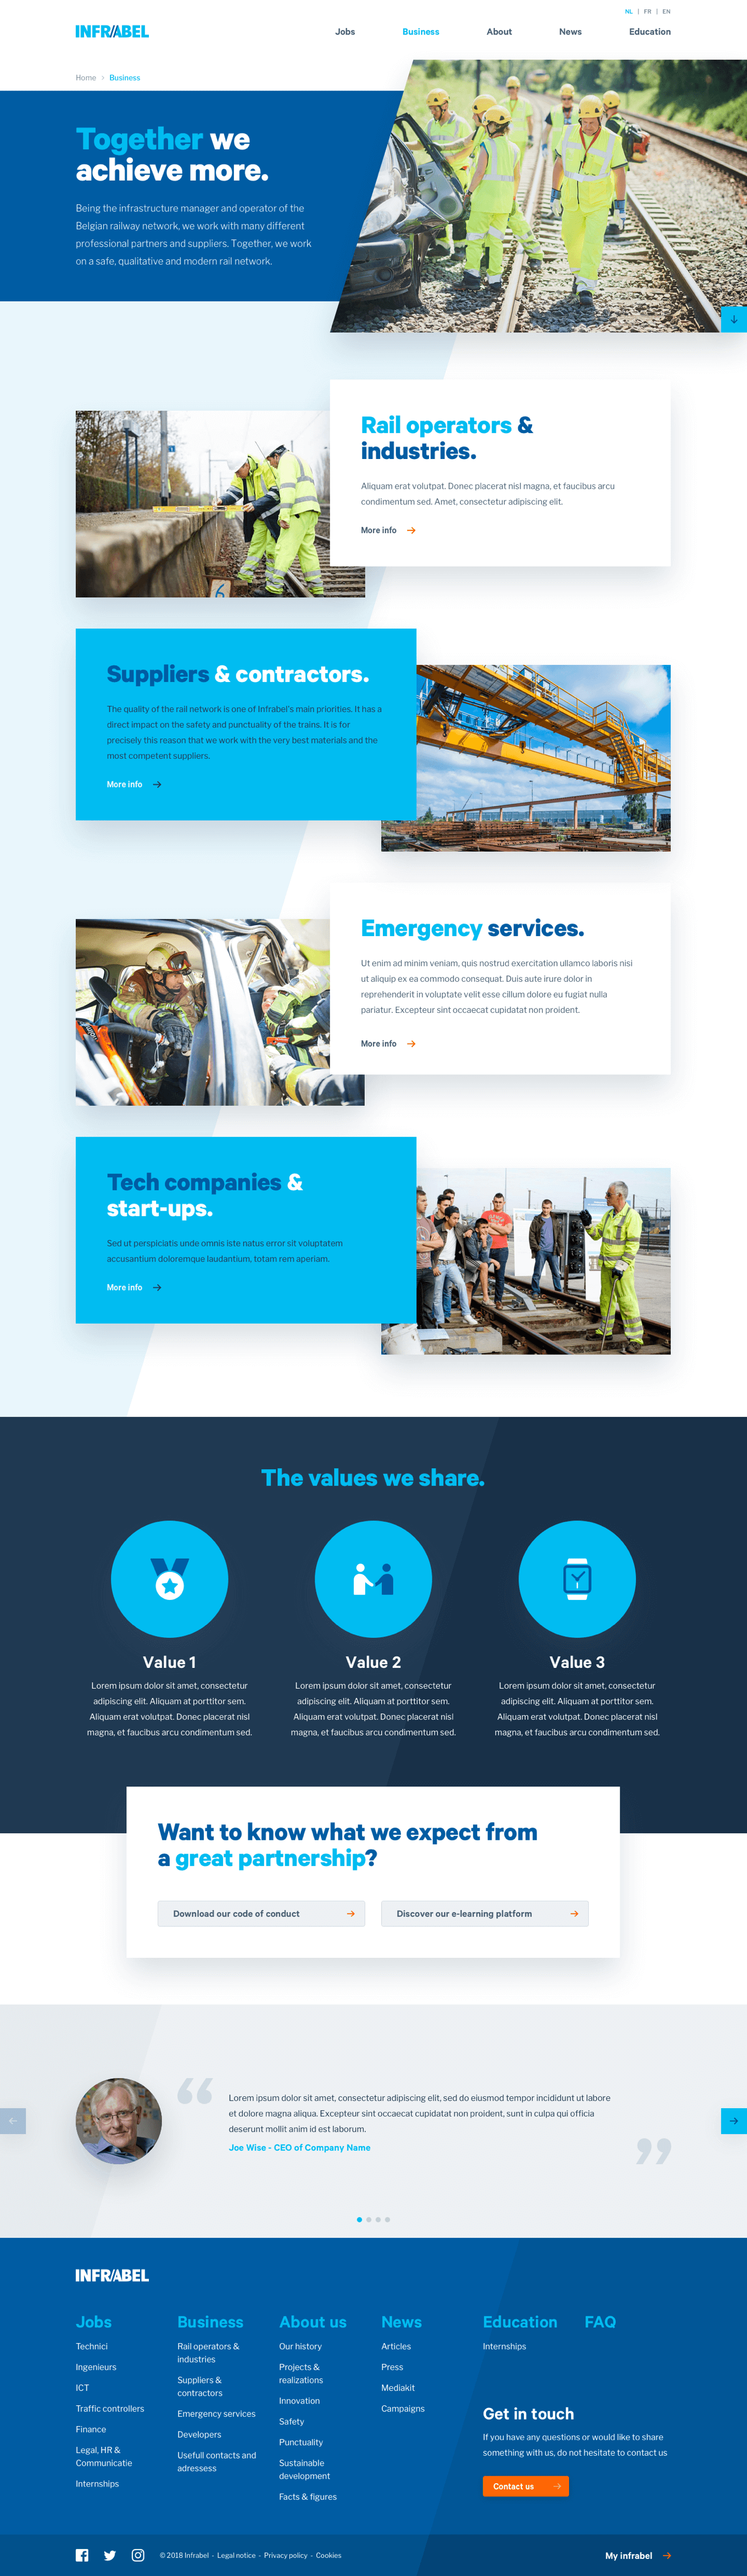 Design for Infrabel's Business page